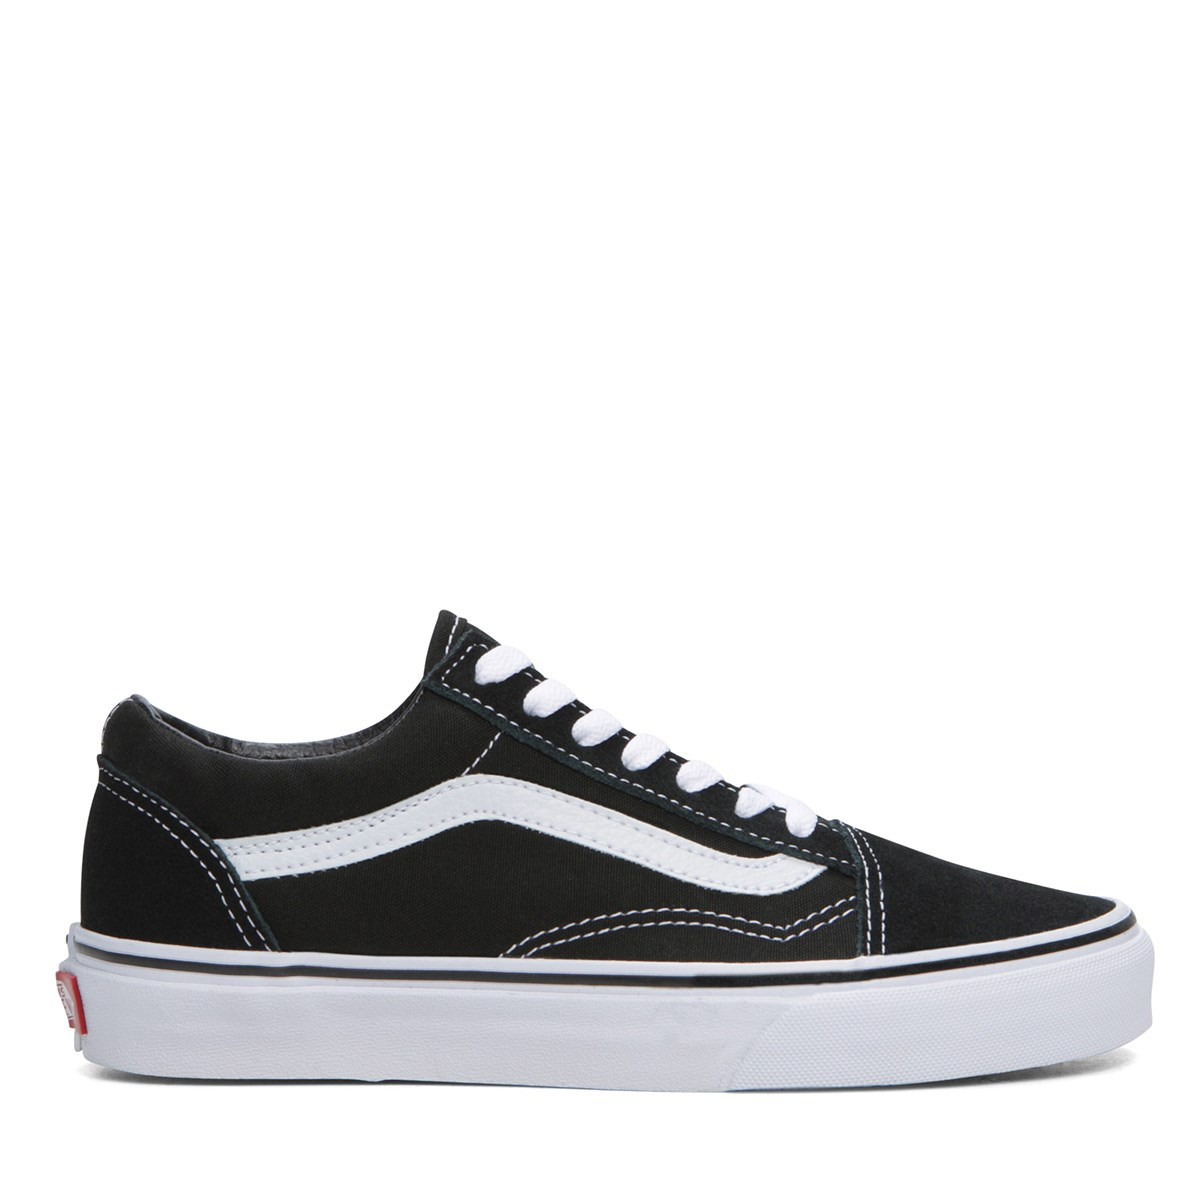 c4cf9346b0 Old Skool Black   White Sneaker. Previous. default view ...